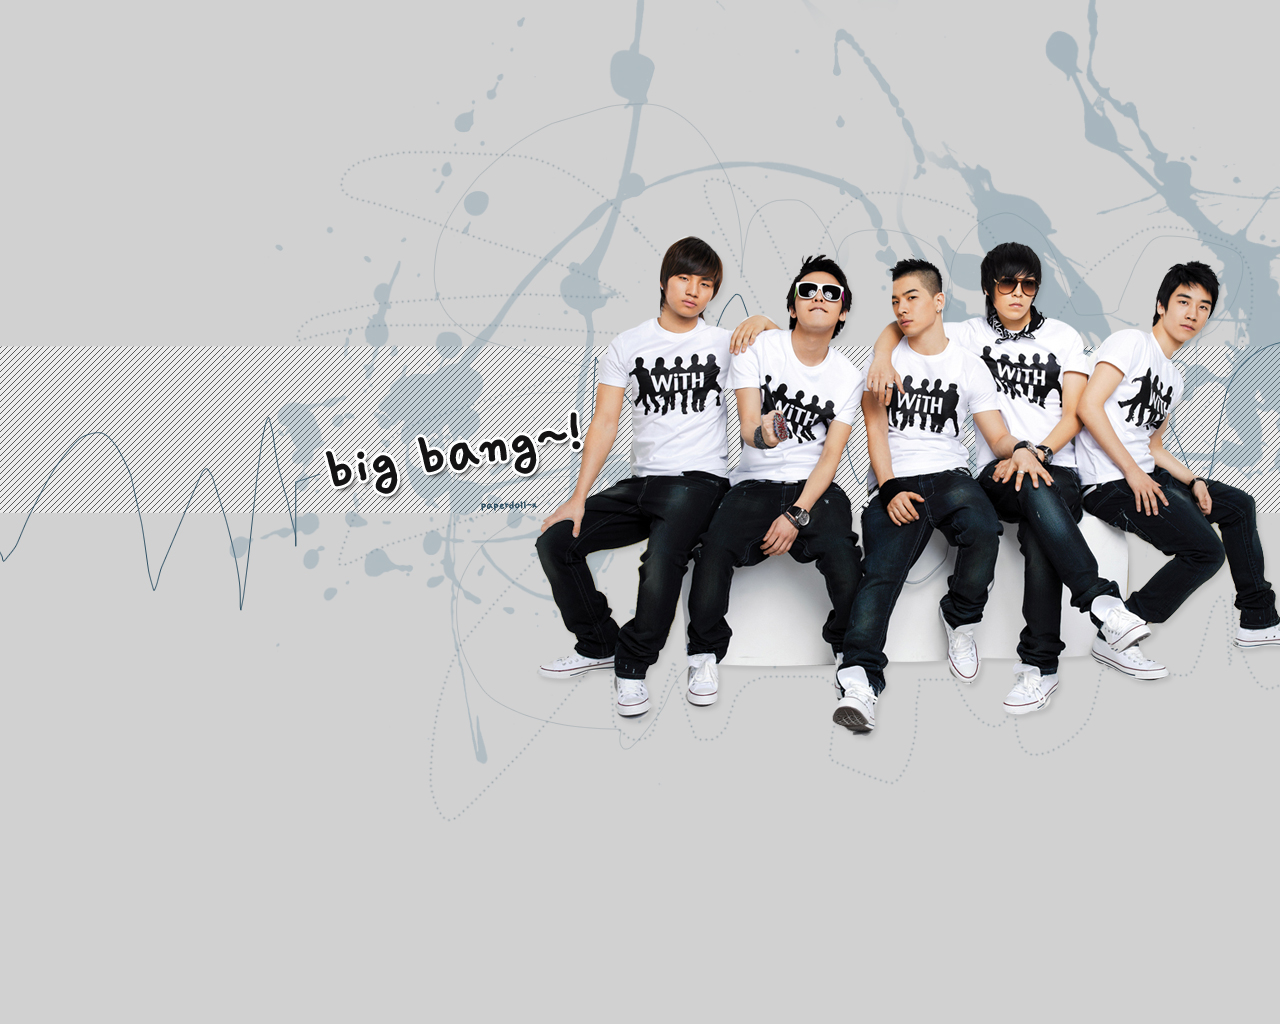 Big Bang wallpaper  kpop 4ever Wallpaper 32174798  Fanpop